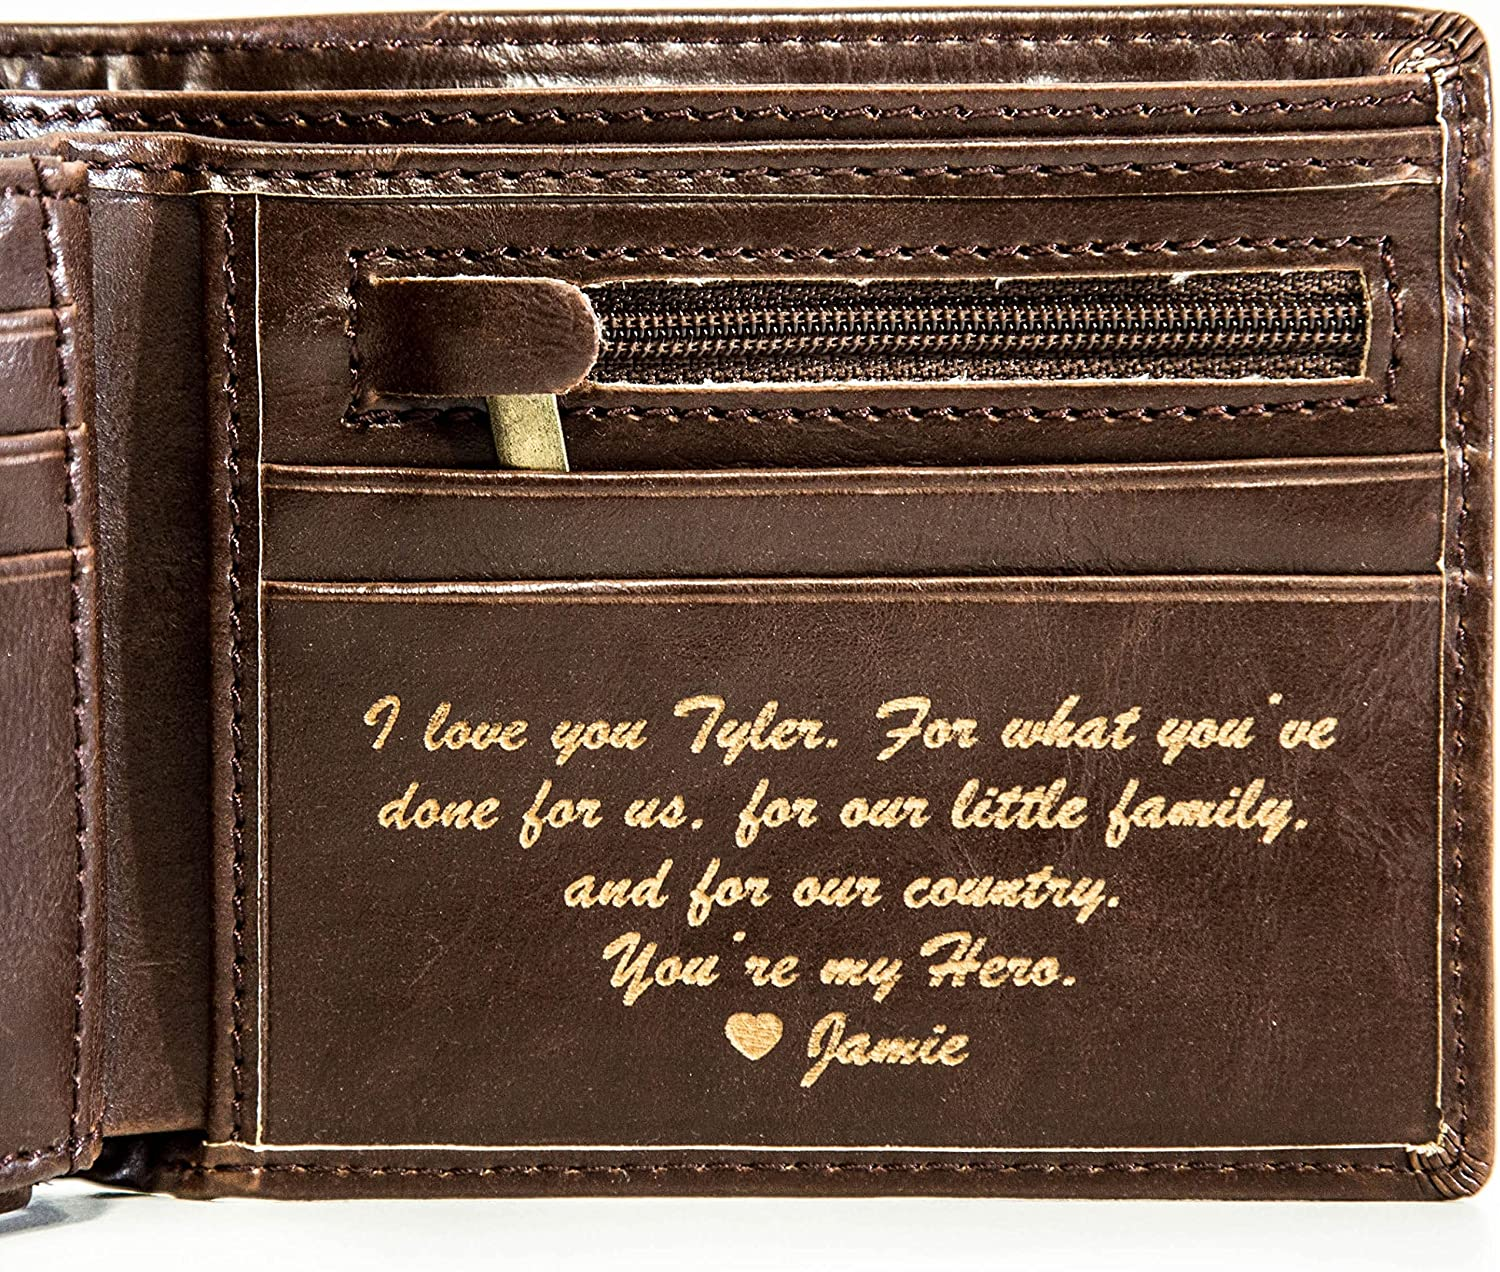 Personalized Mens Wallet Leather Wallet The Perfect Mens Gift Boyfriend Gift Father S Day Gift Or Groomsmen Gift Personalized Gifts For Men A Bifold Wallet With Id Sleeve And Coin Pocket